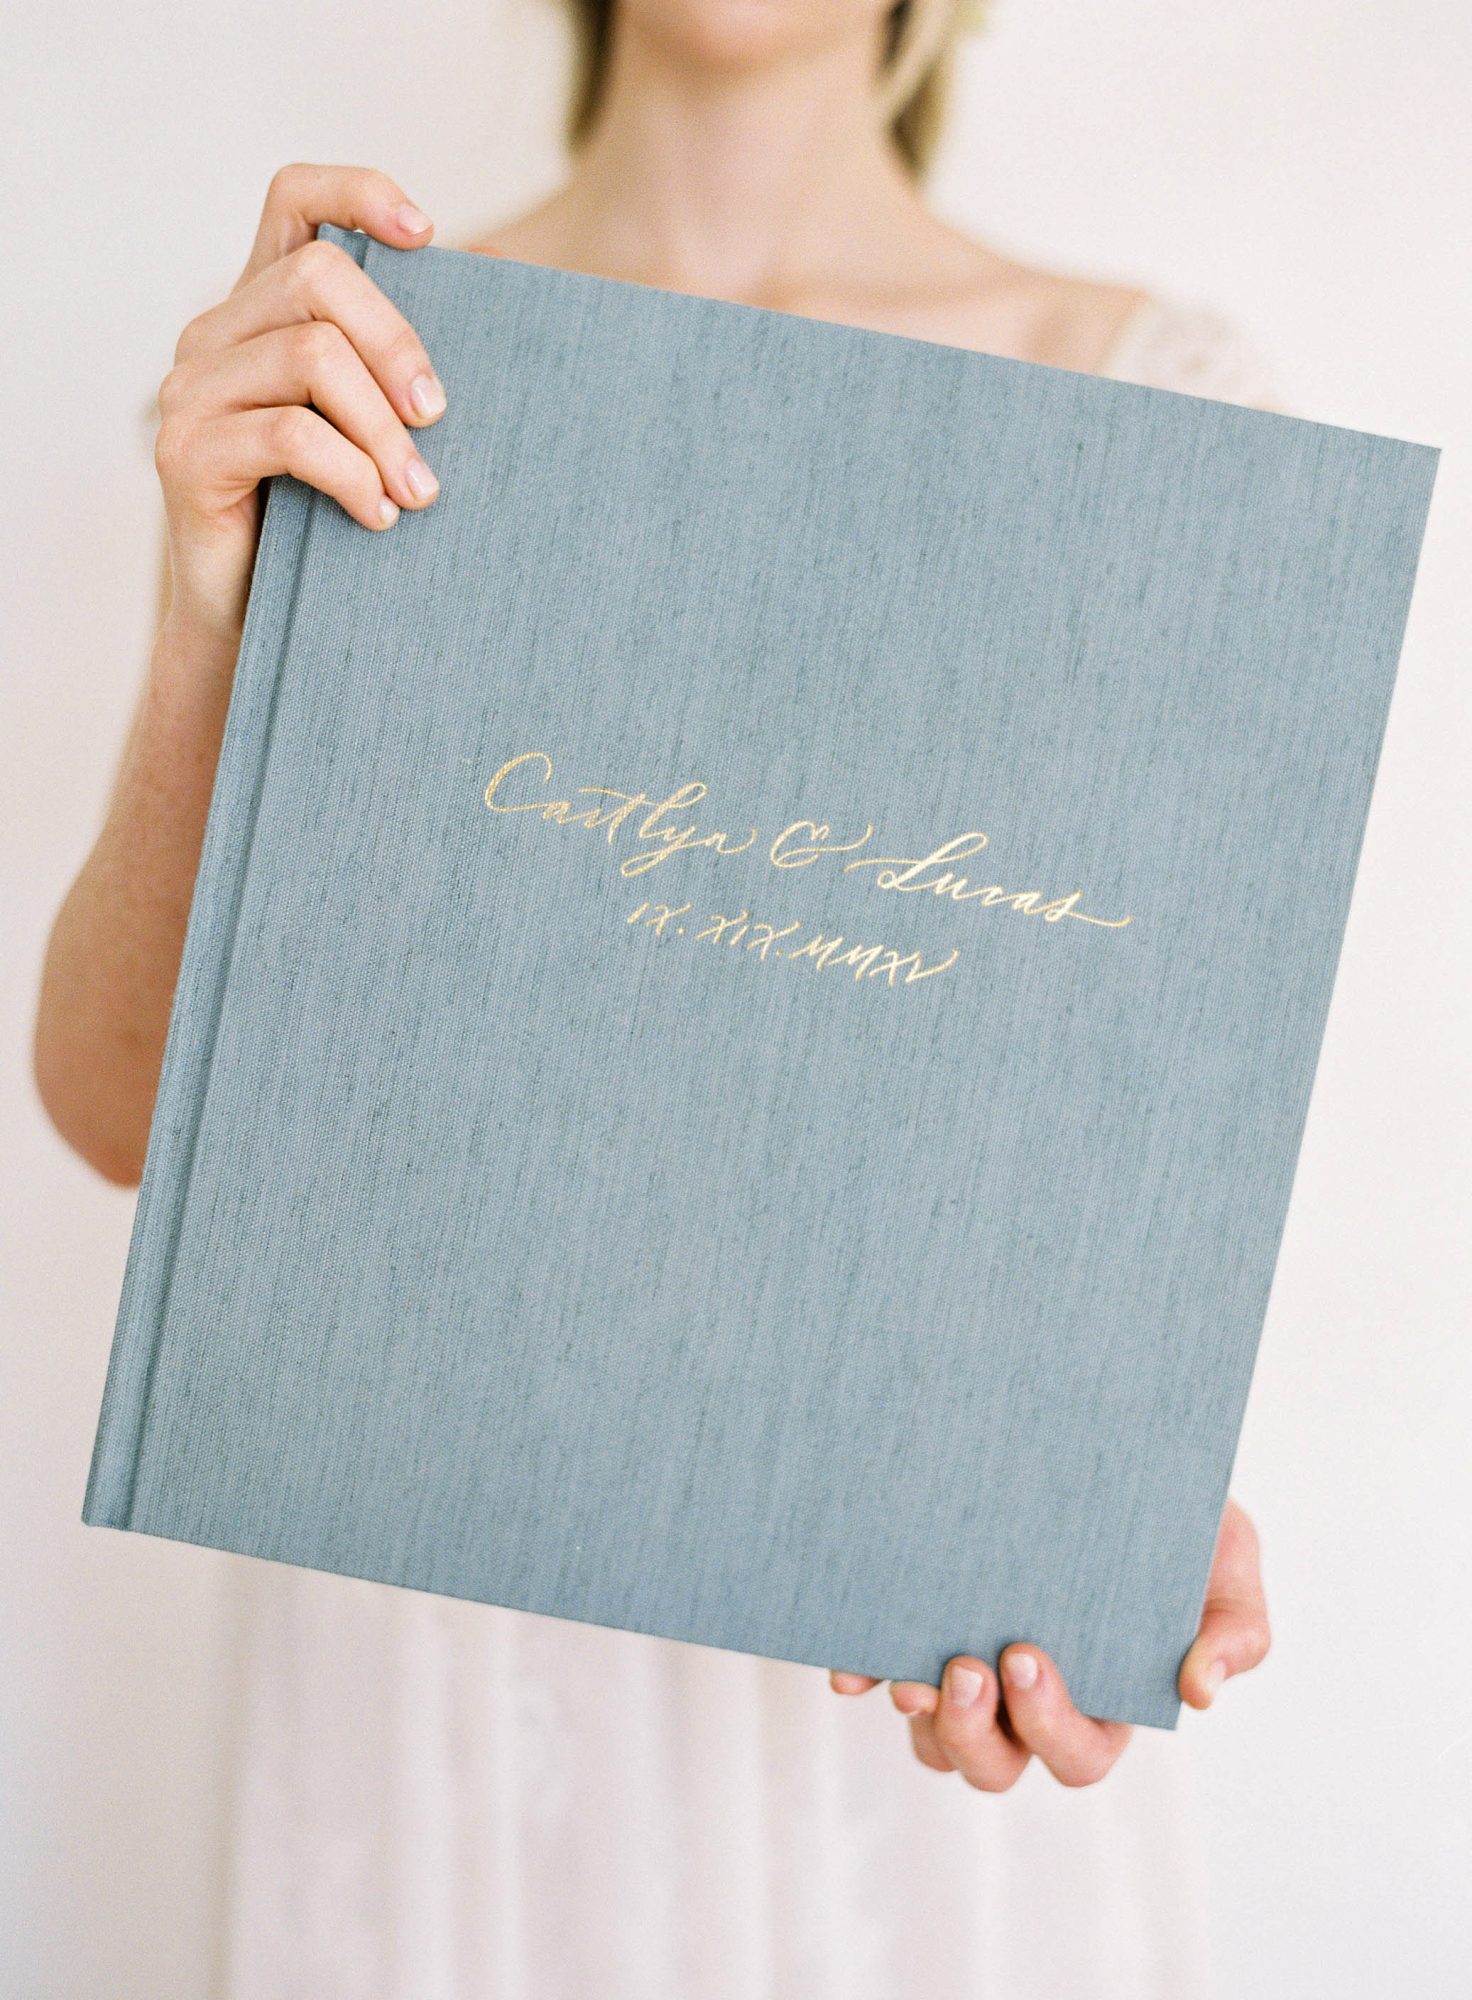 wedding photo album book high quality linen cover foil stamp